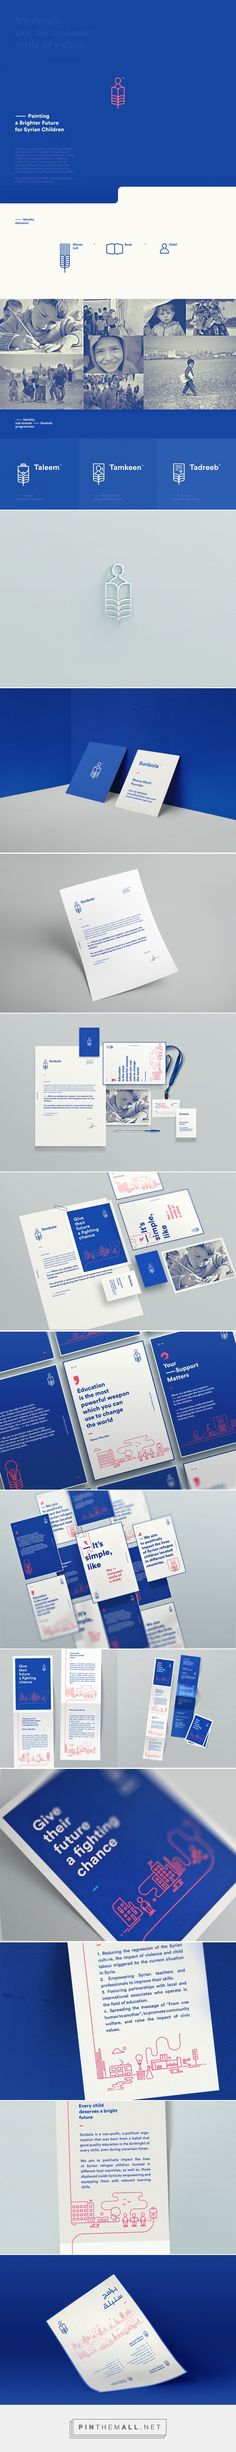 Sonbola™ — (branding/editorial) on Behance - created via https://pinthemall.net